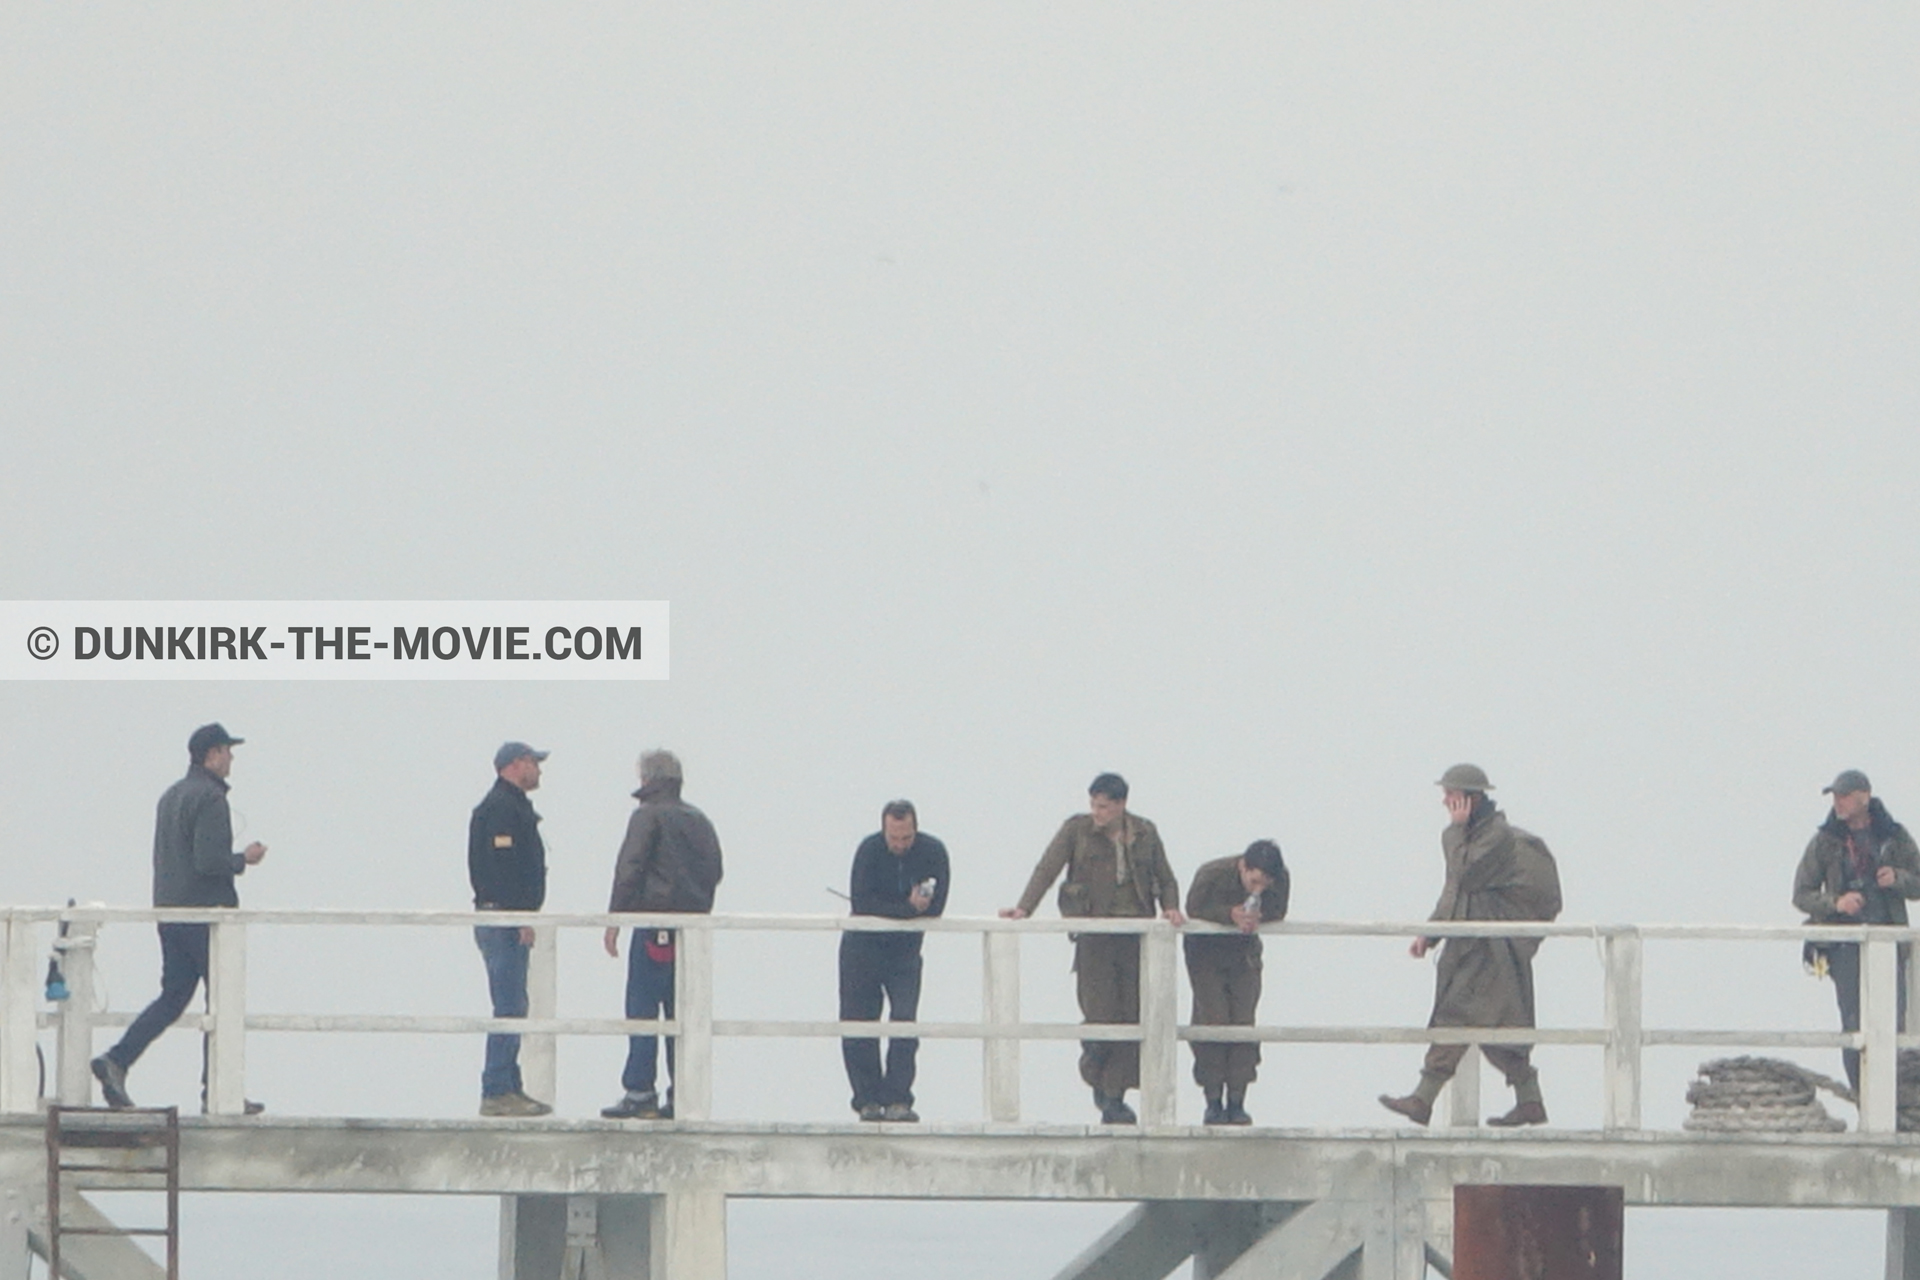 Picture with actor, grey sky, EST pier, technical team, Nilo Otero,  from behind the scene of the Dunkirk movie by Nolan